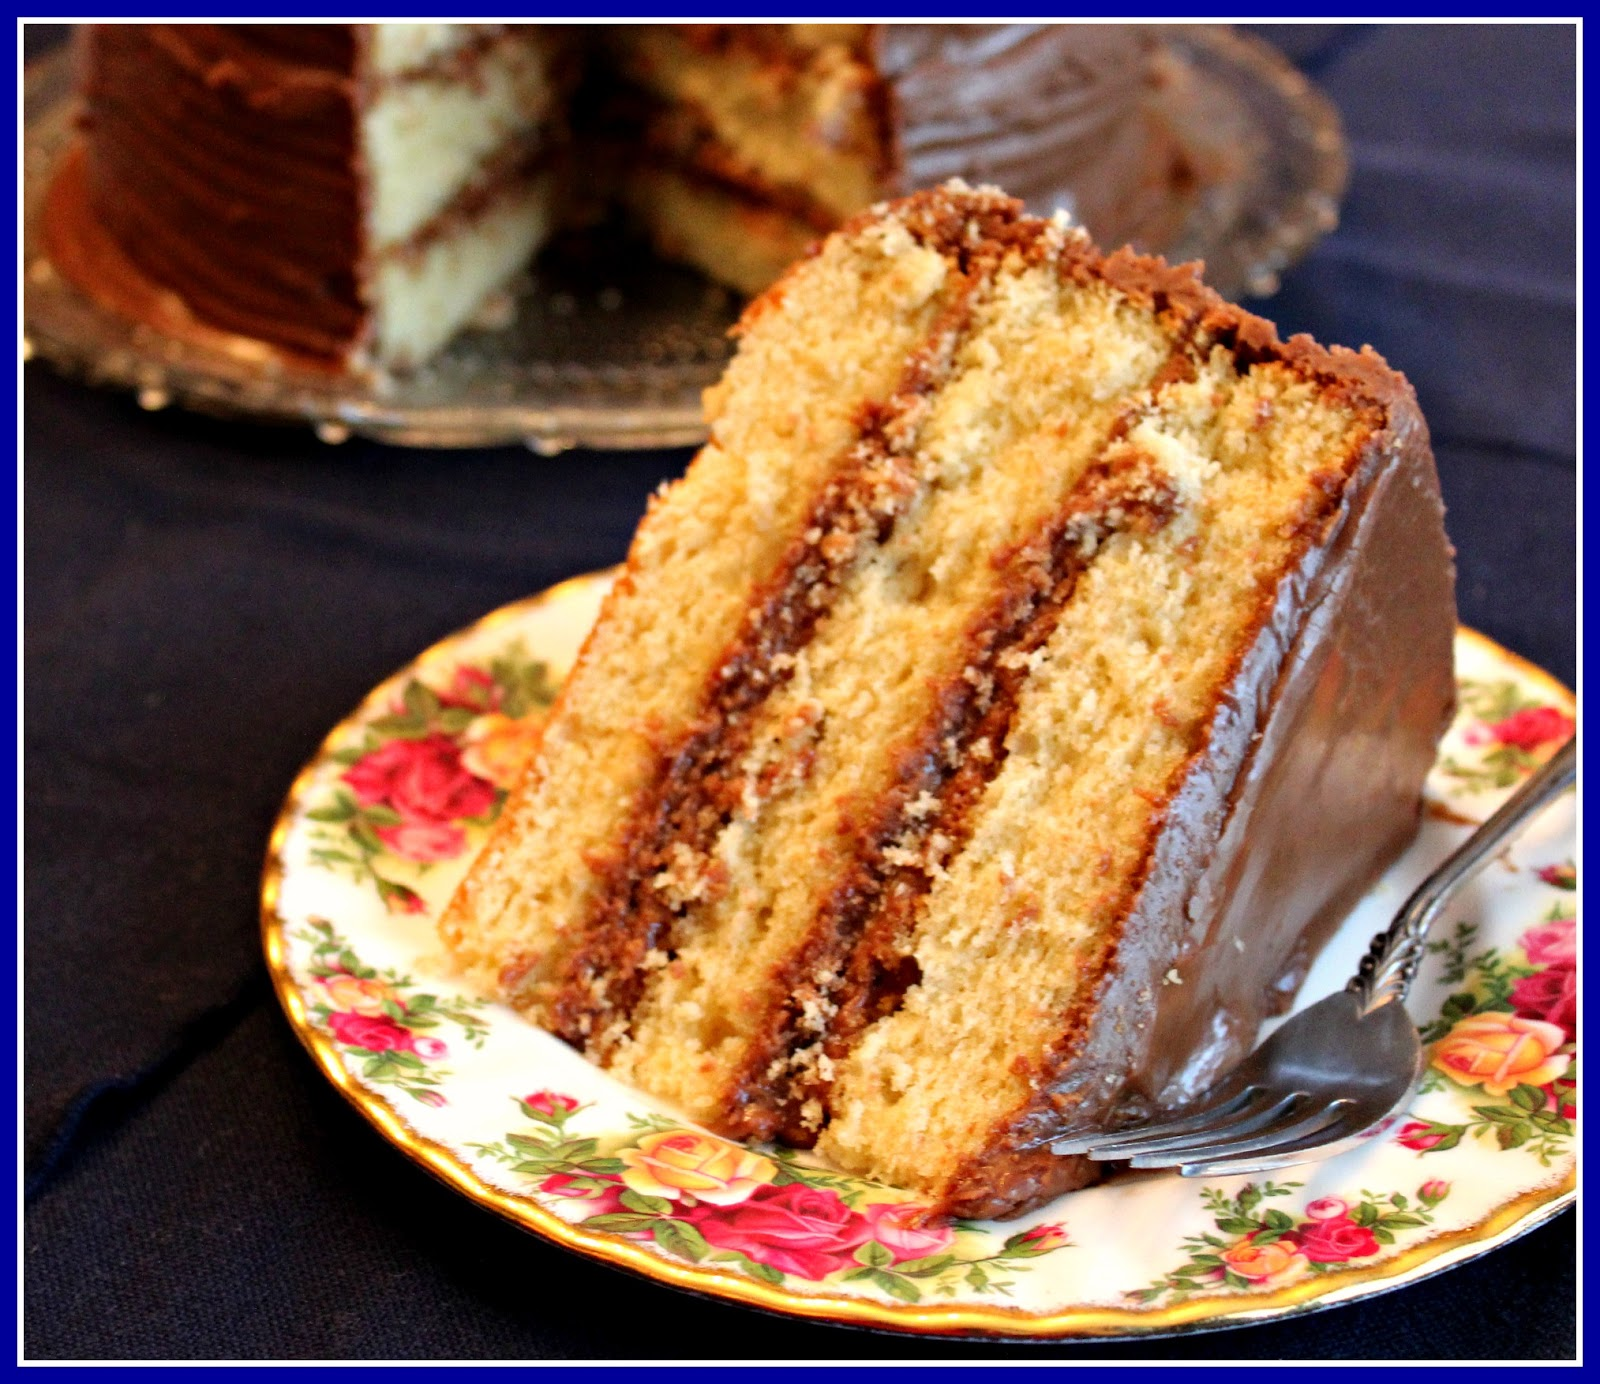 ... Tea and Cornbread: Old Fashioned Yellow Cake with Chocolate Icing